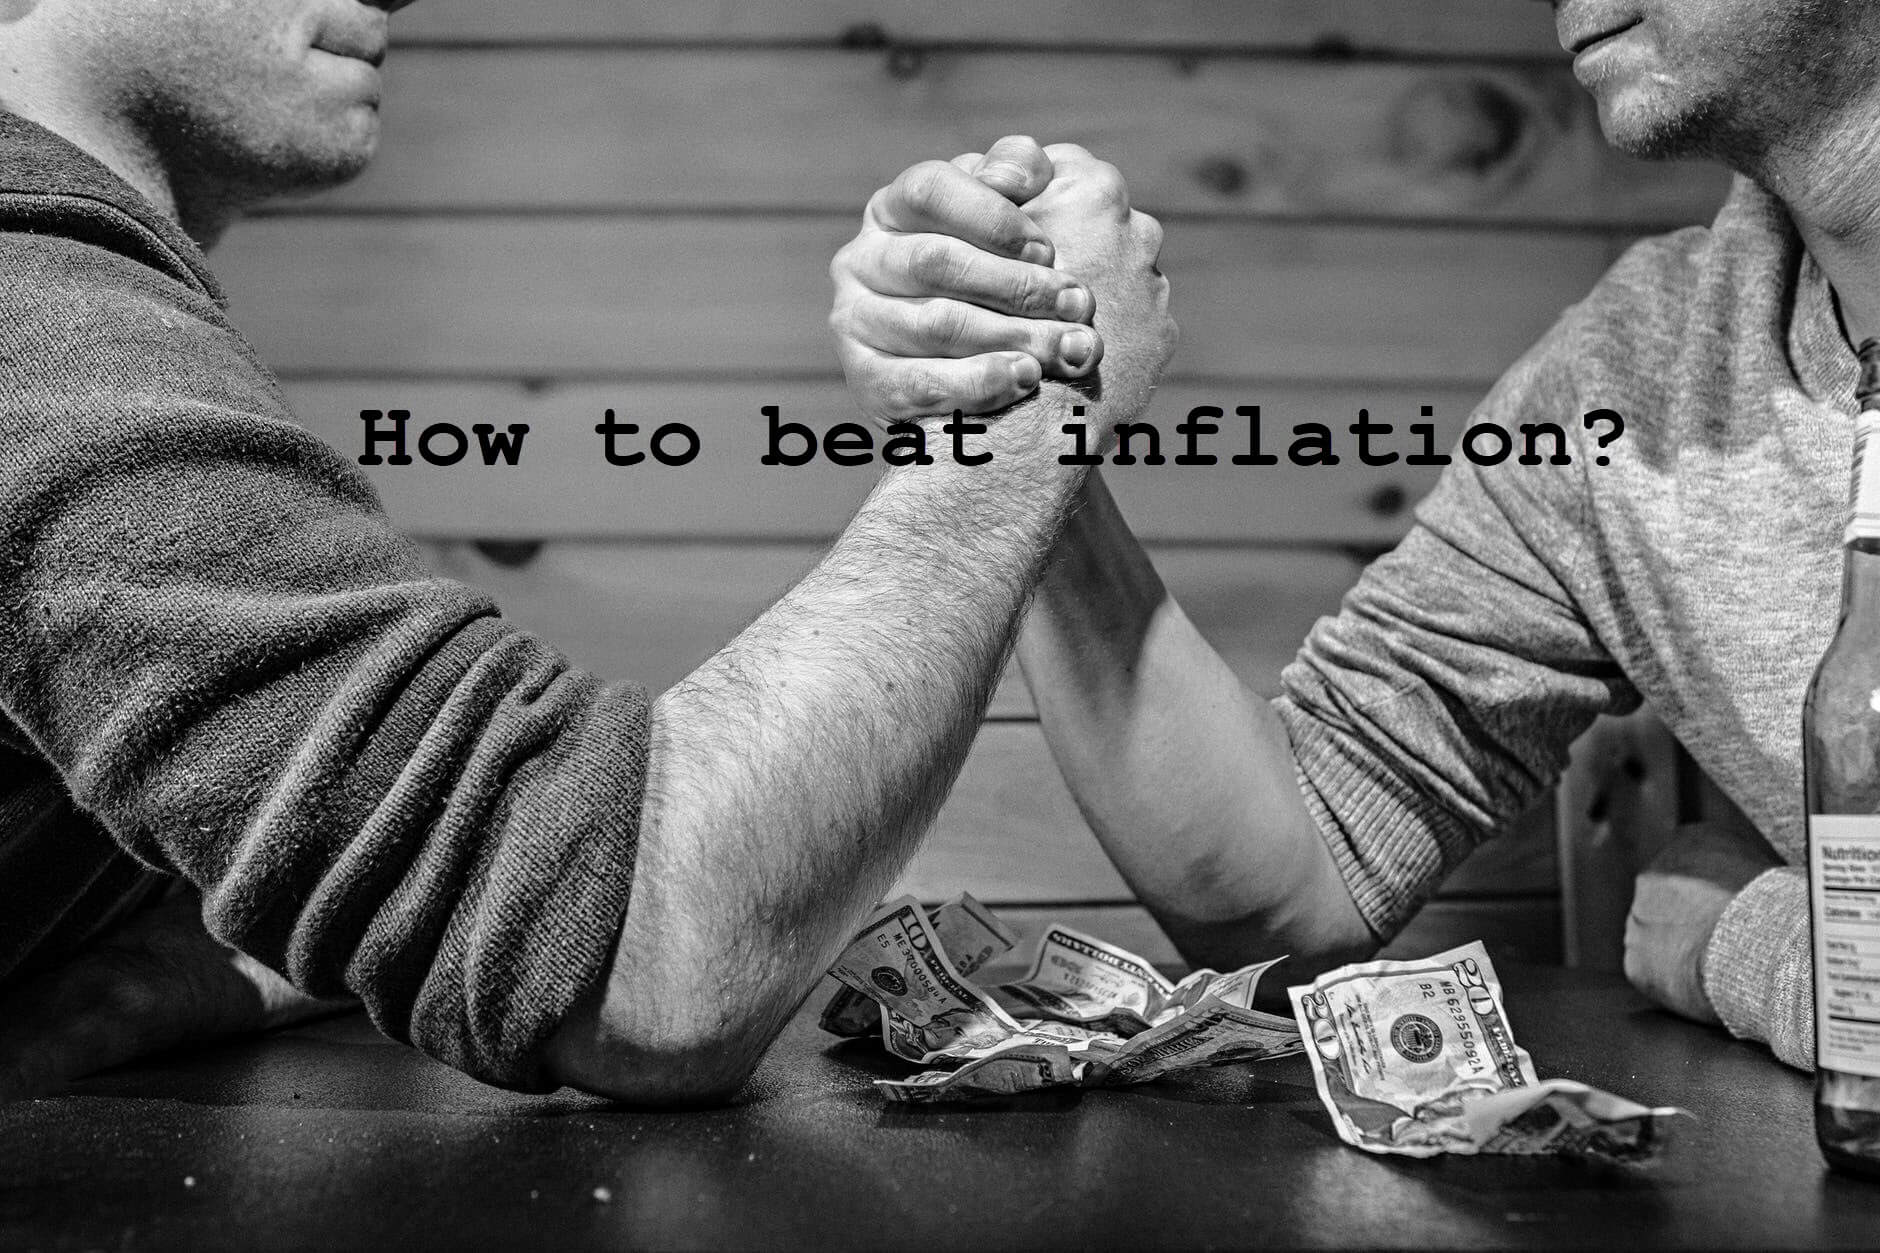 How to beat inflation?